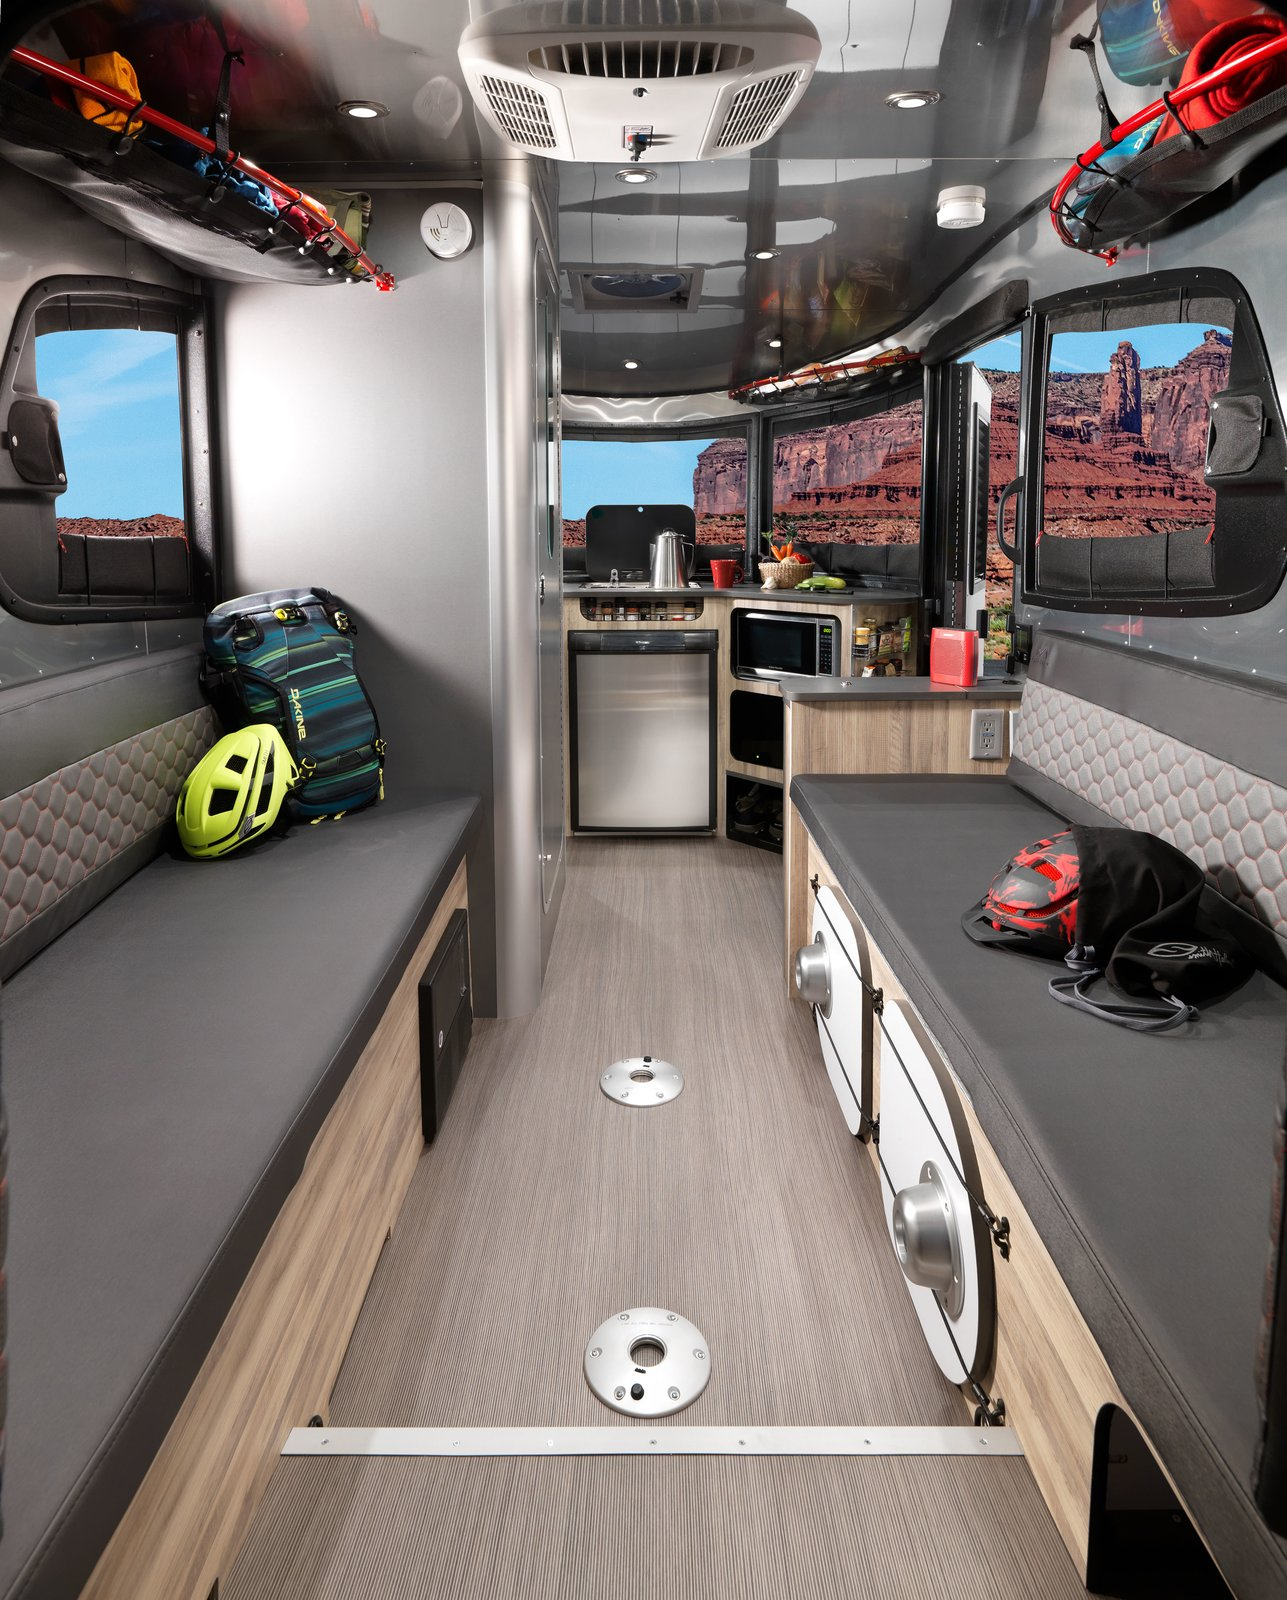 Living Room, Light Hardwood Floor, Recessed Lighting, and Bench basecamp airstream adventure trailer interior  Photo 2 of 14 in Airstream's Basecamp Is a Lightweight Trailer Stuffed With Smart Travel Solutions